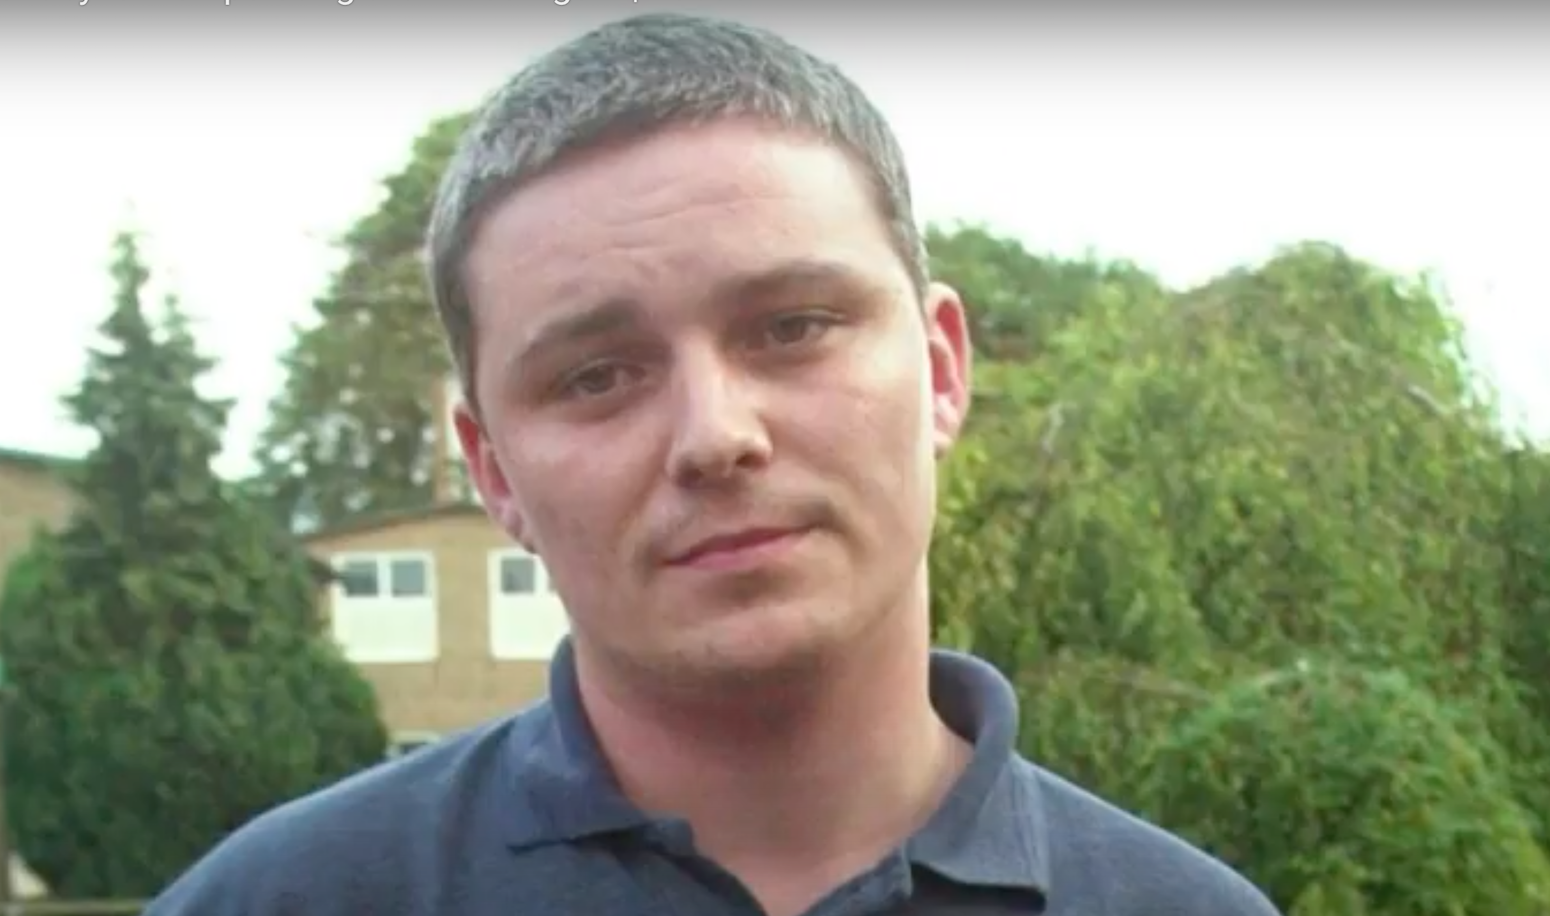 Where is Ian Huntley now and does he have coronavirus?